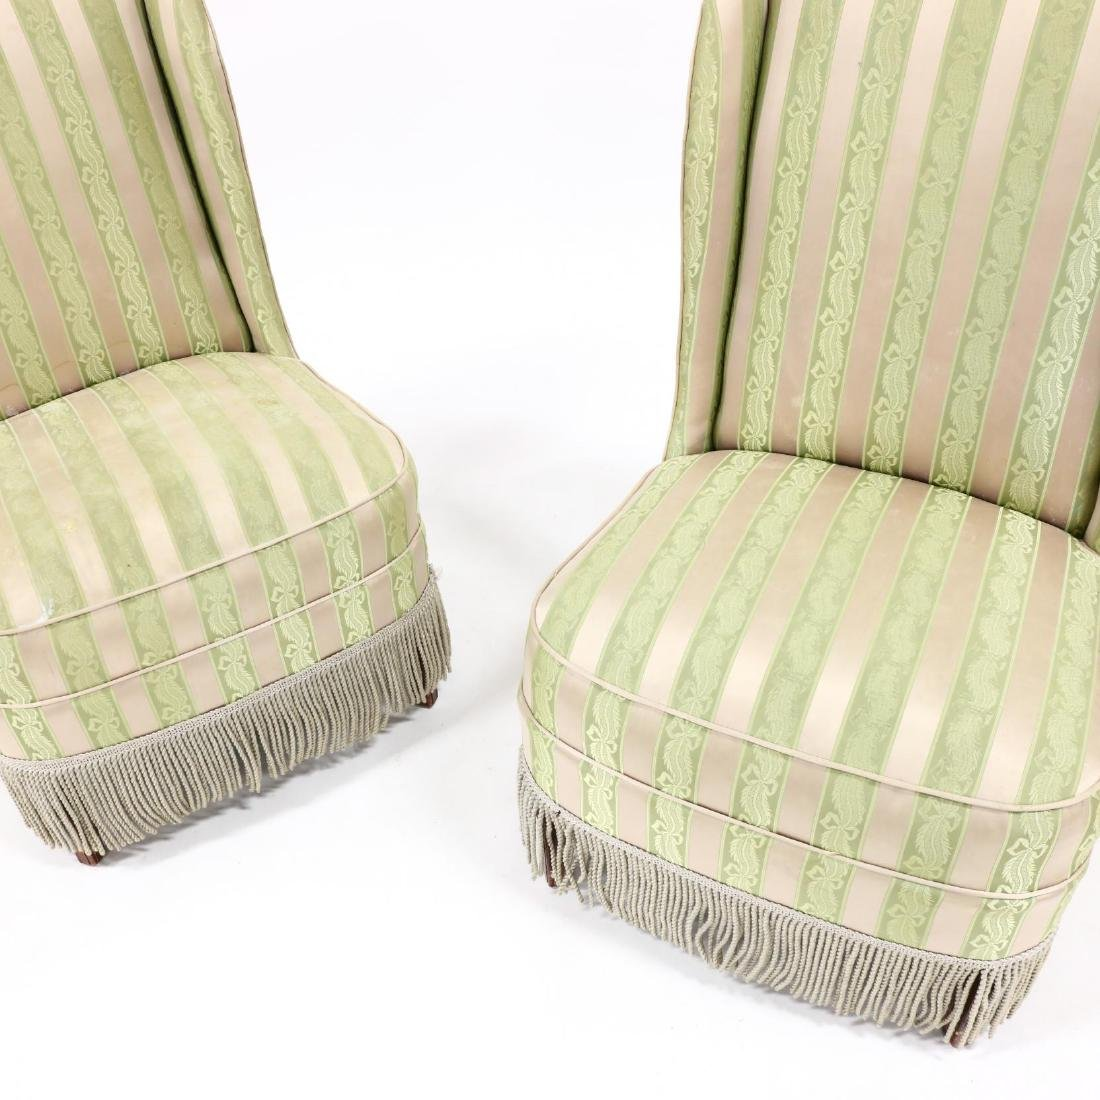 Pair of Vintage Silk Upholstered Slipper Chairs - 2